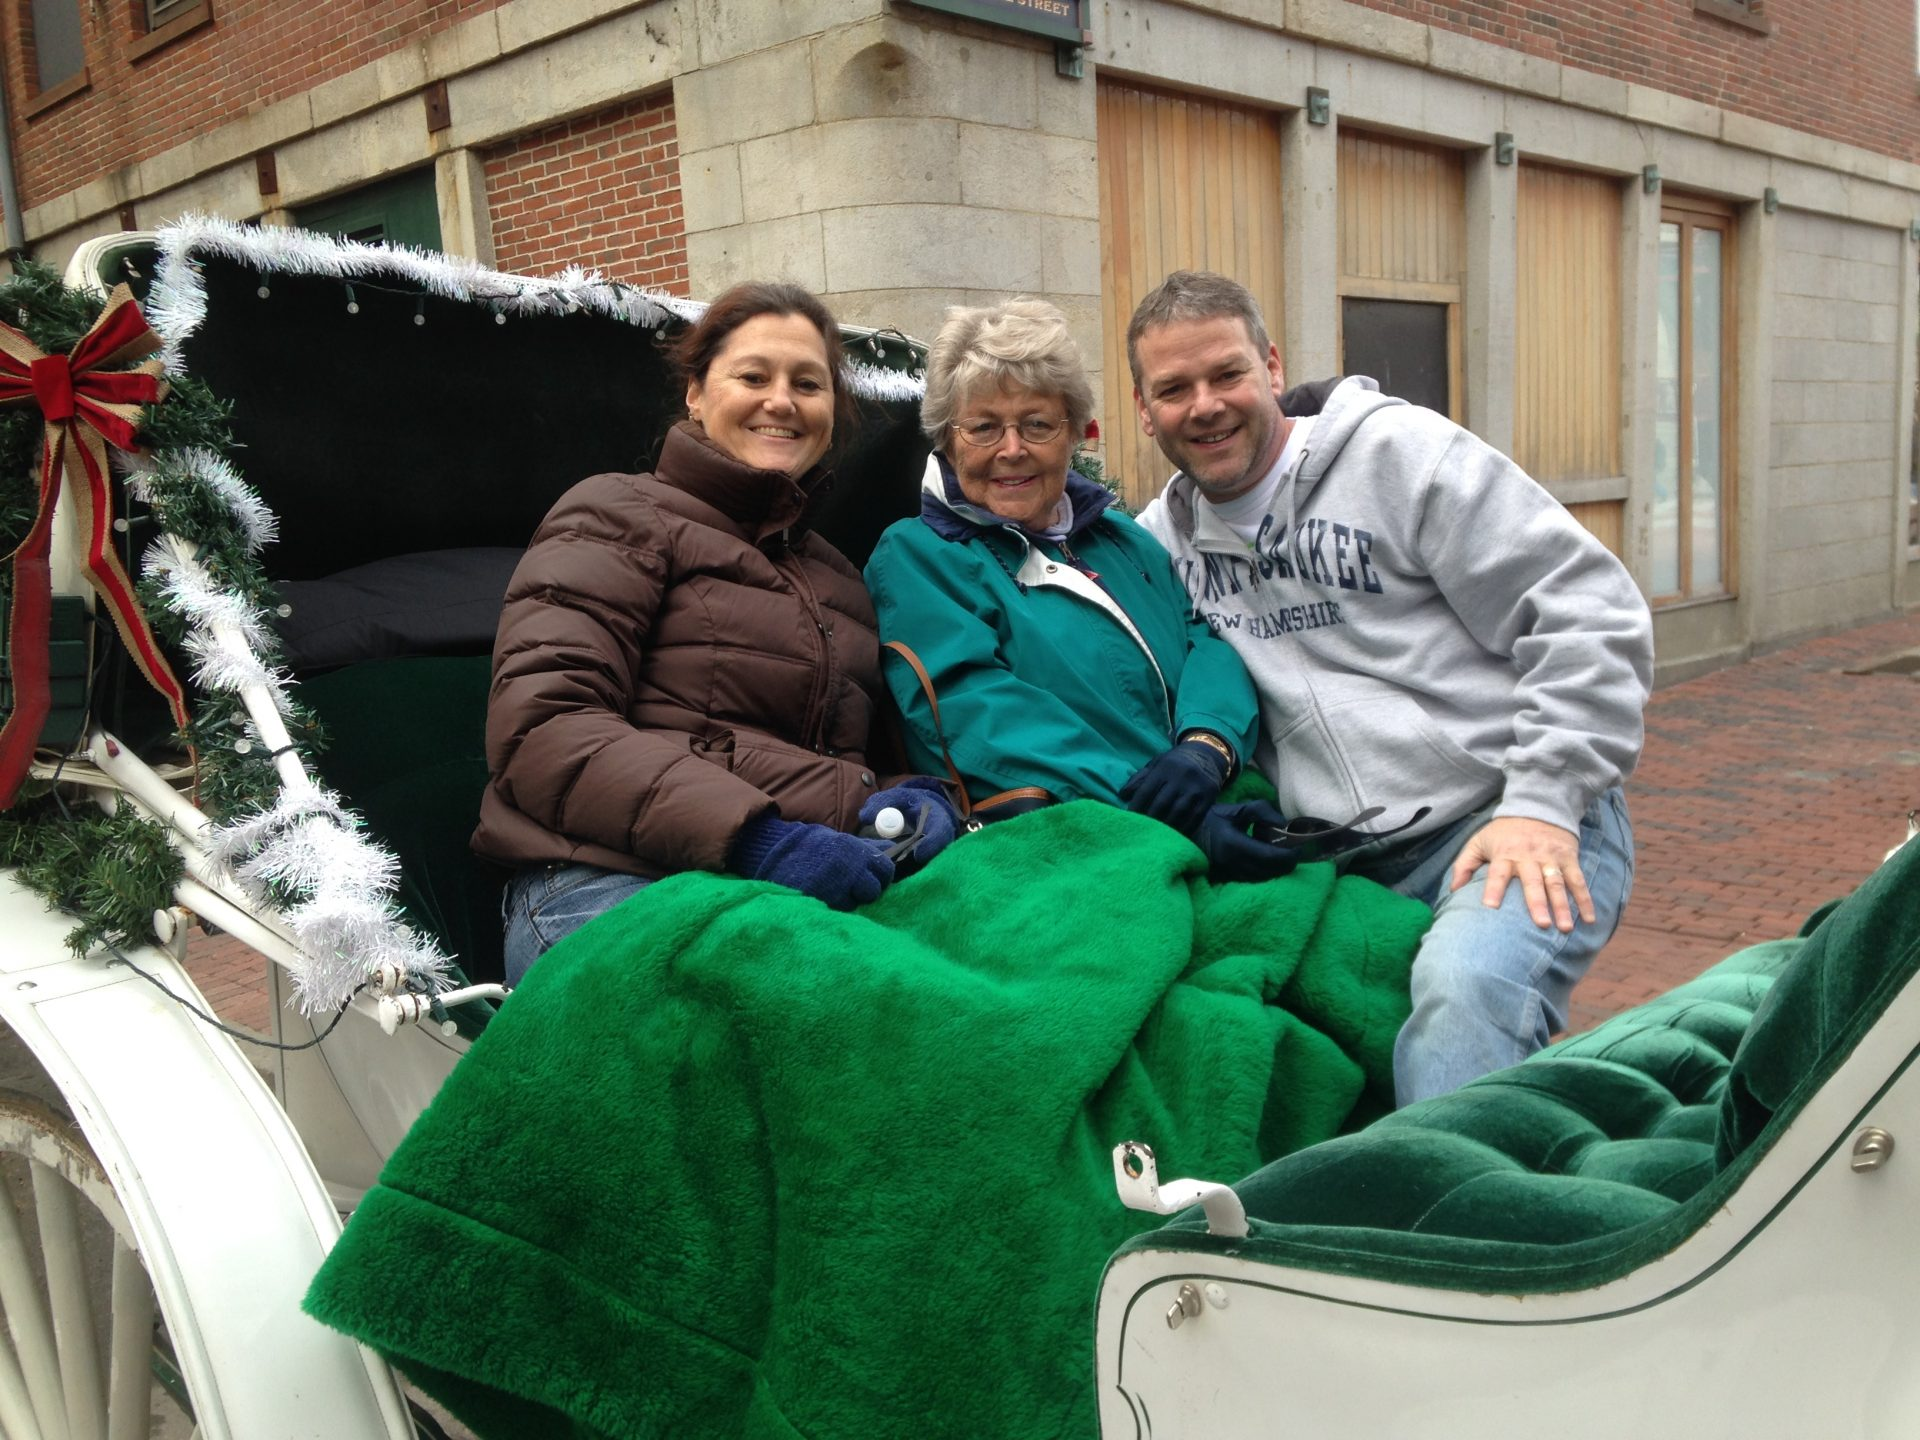 Horse drawn carriage ride -  Quincy Market - February 2016